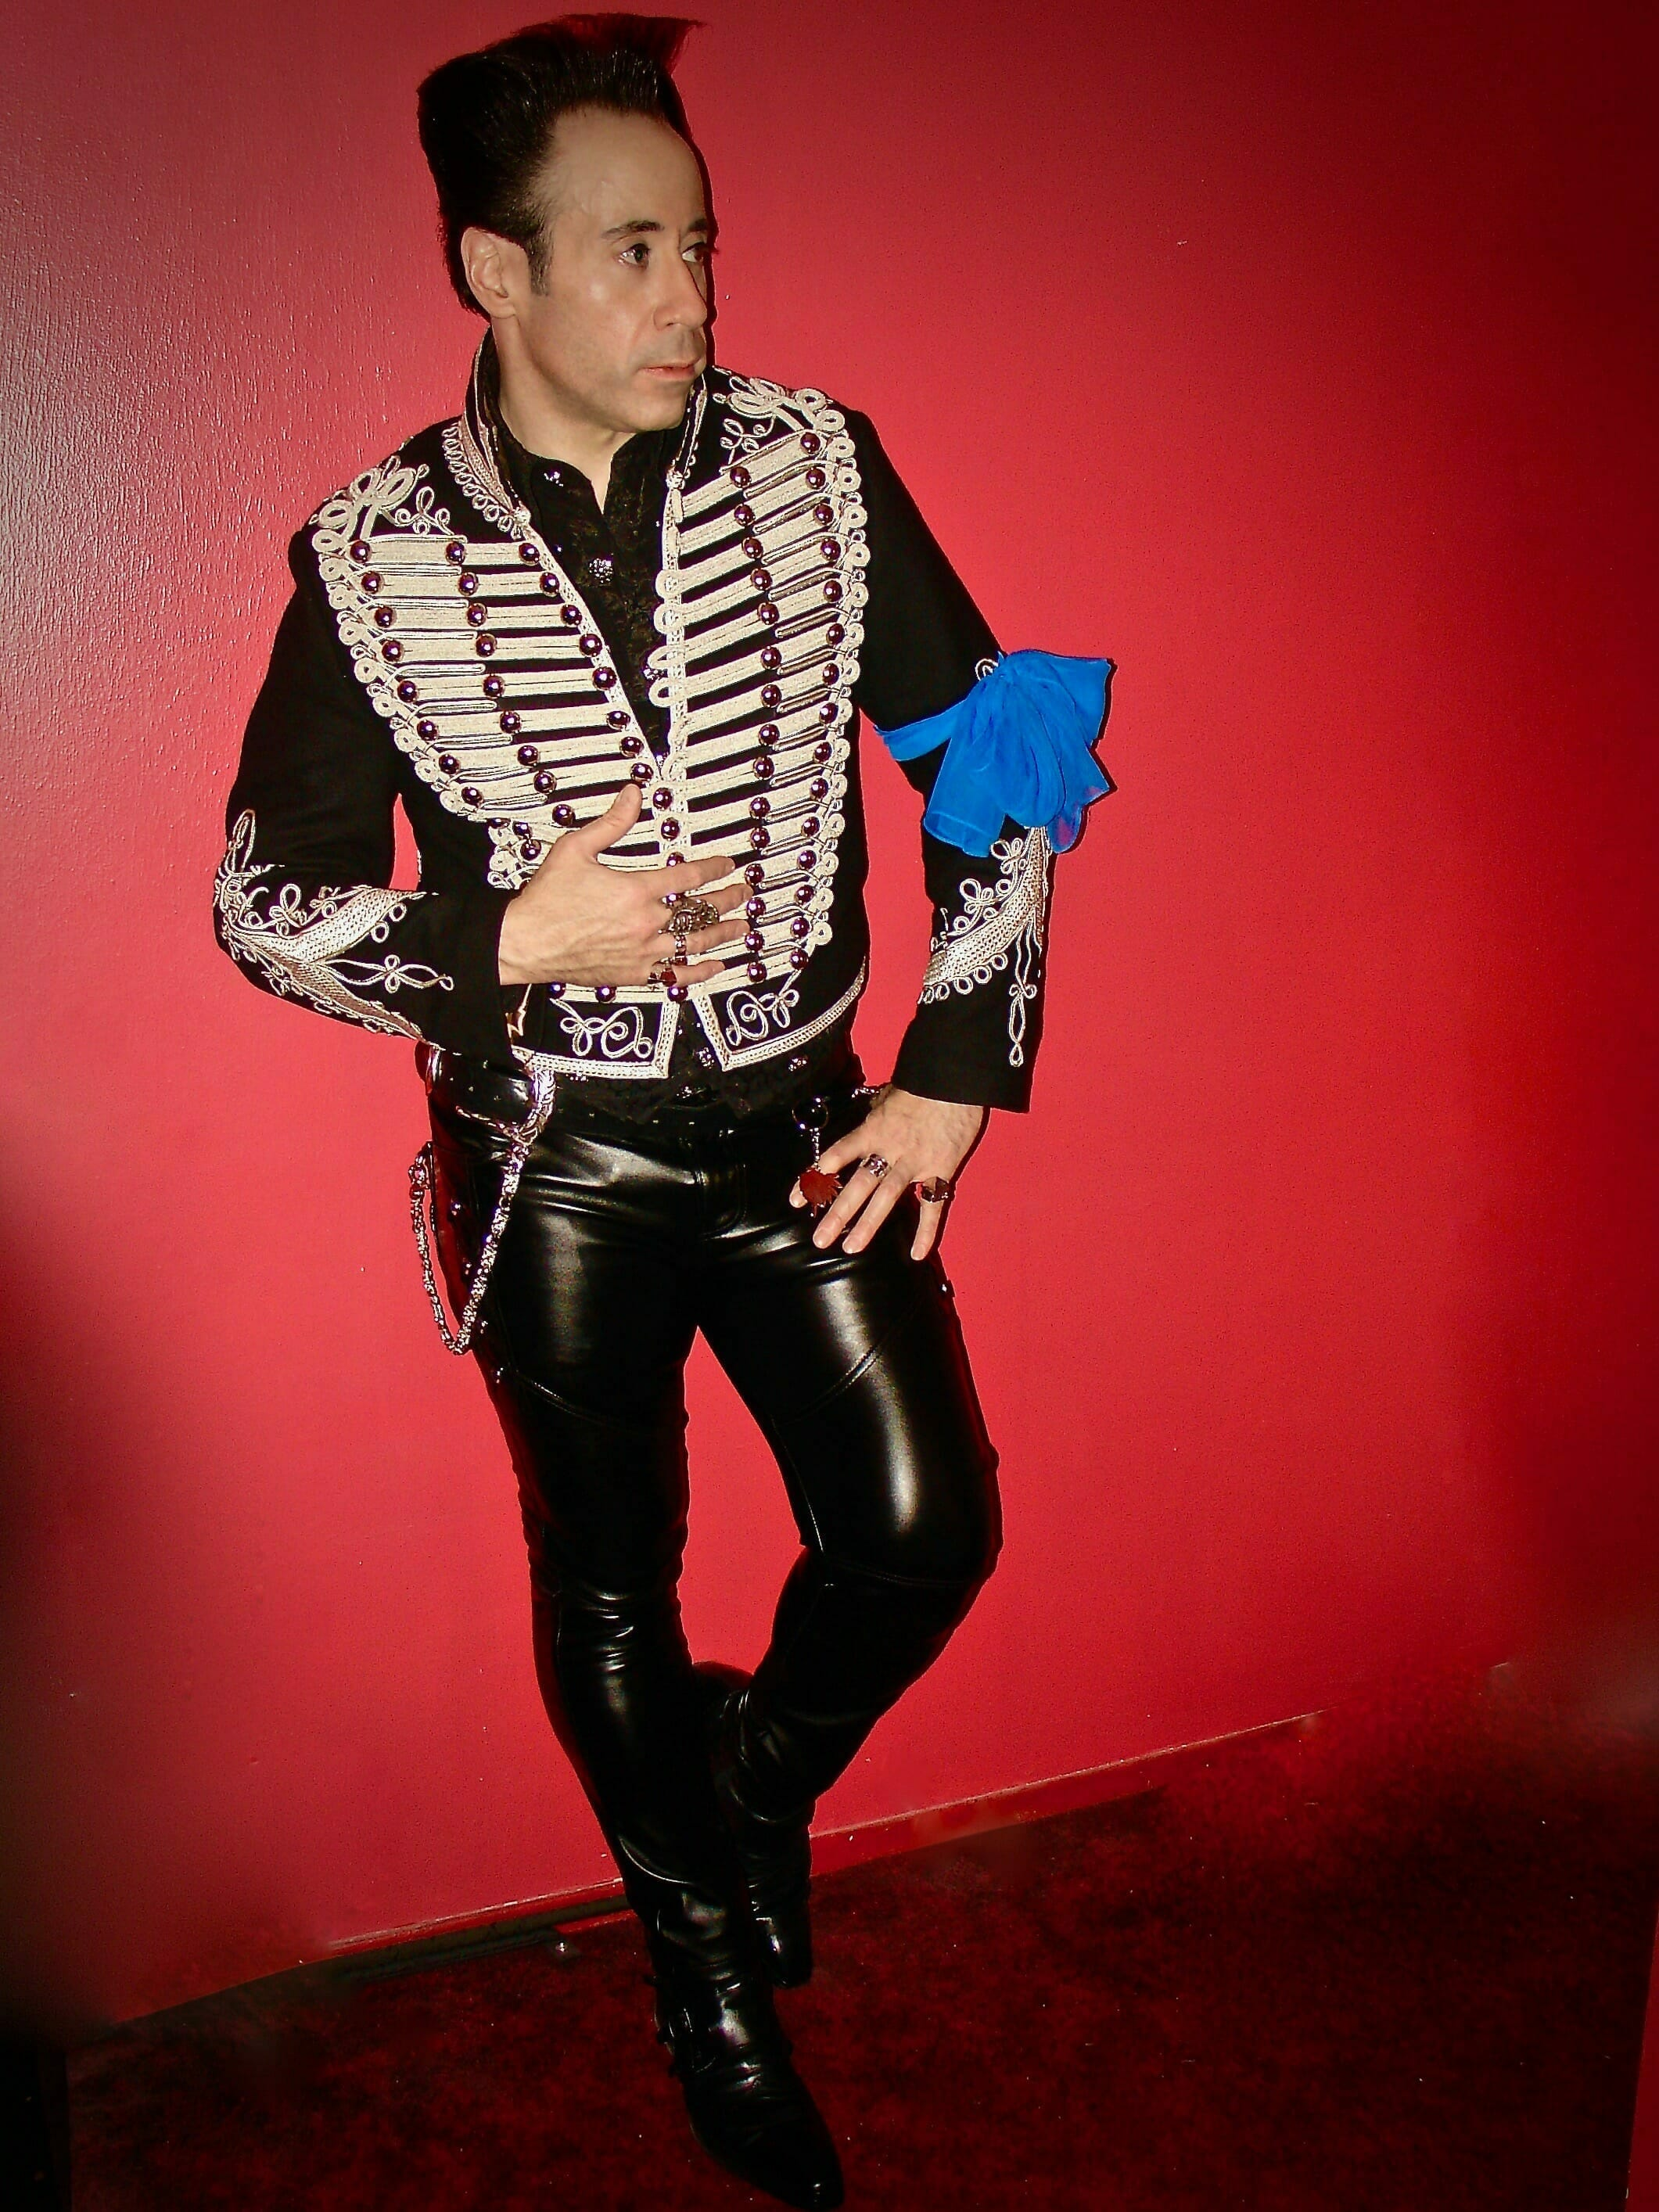 VJ Johnny Blitz wearing a customized version of our Adam Ant Jacket